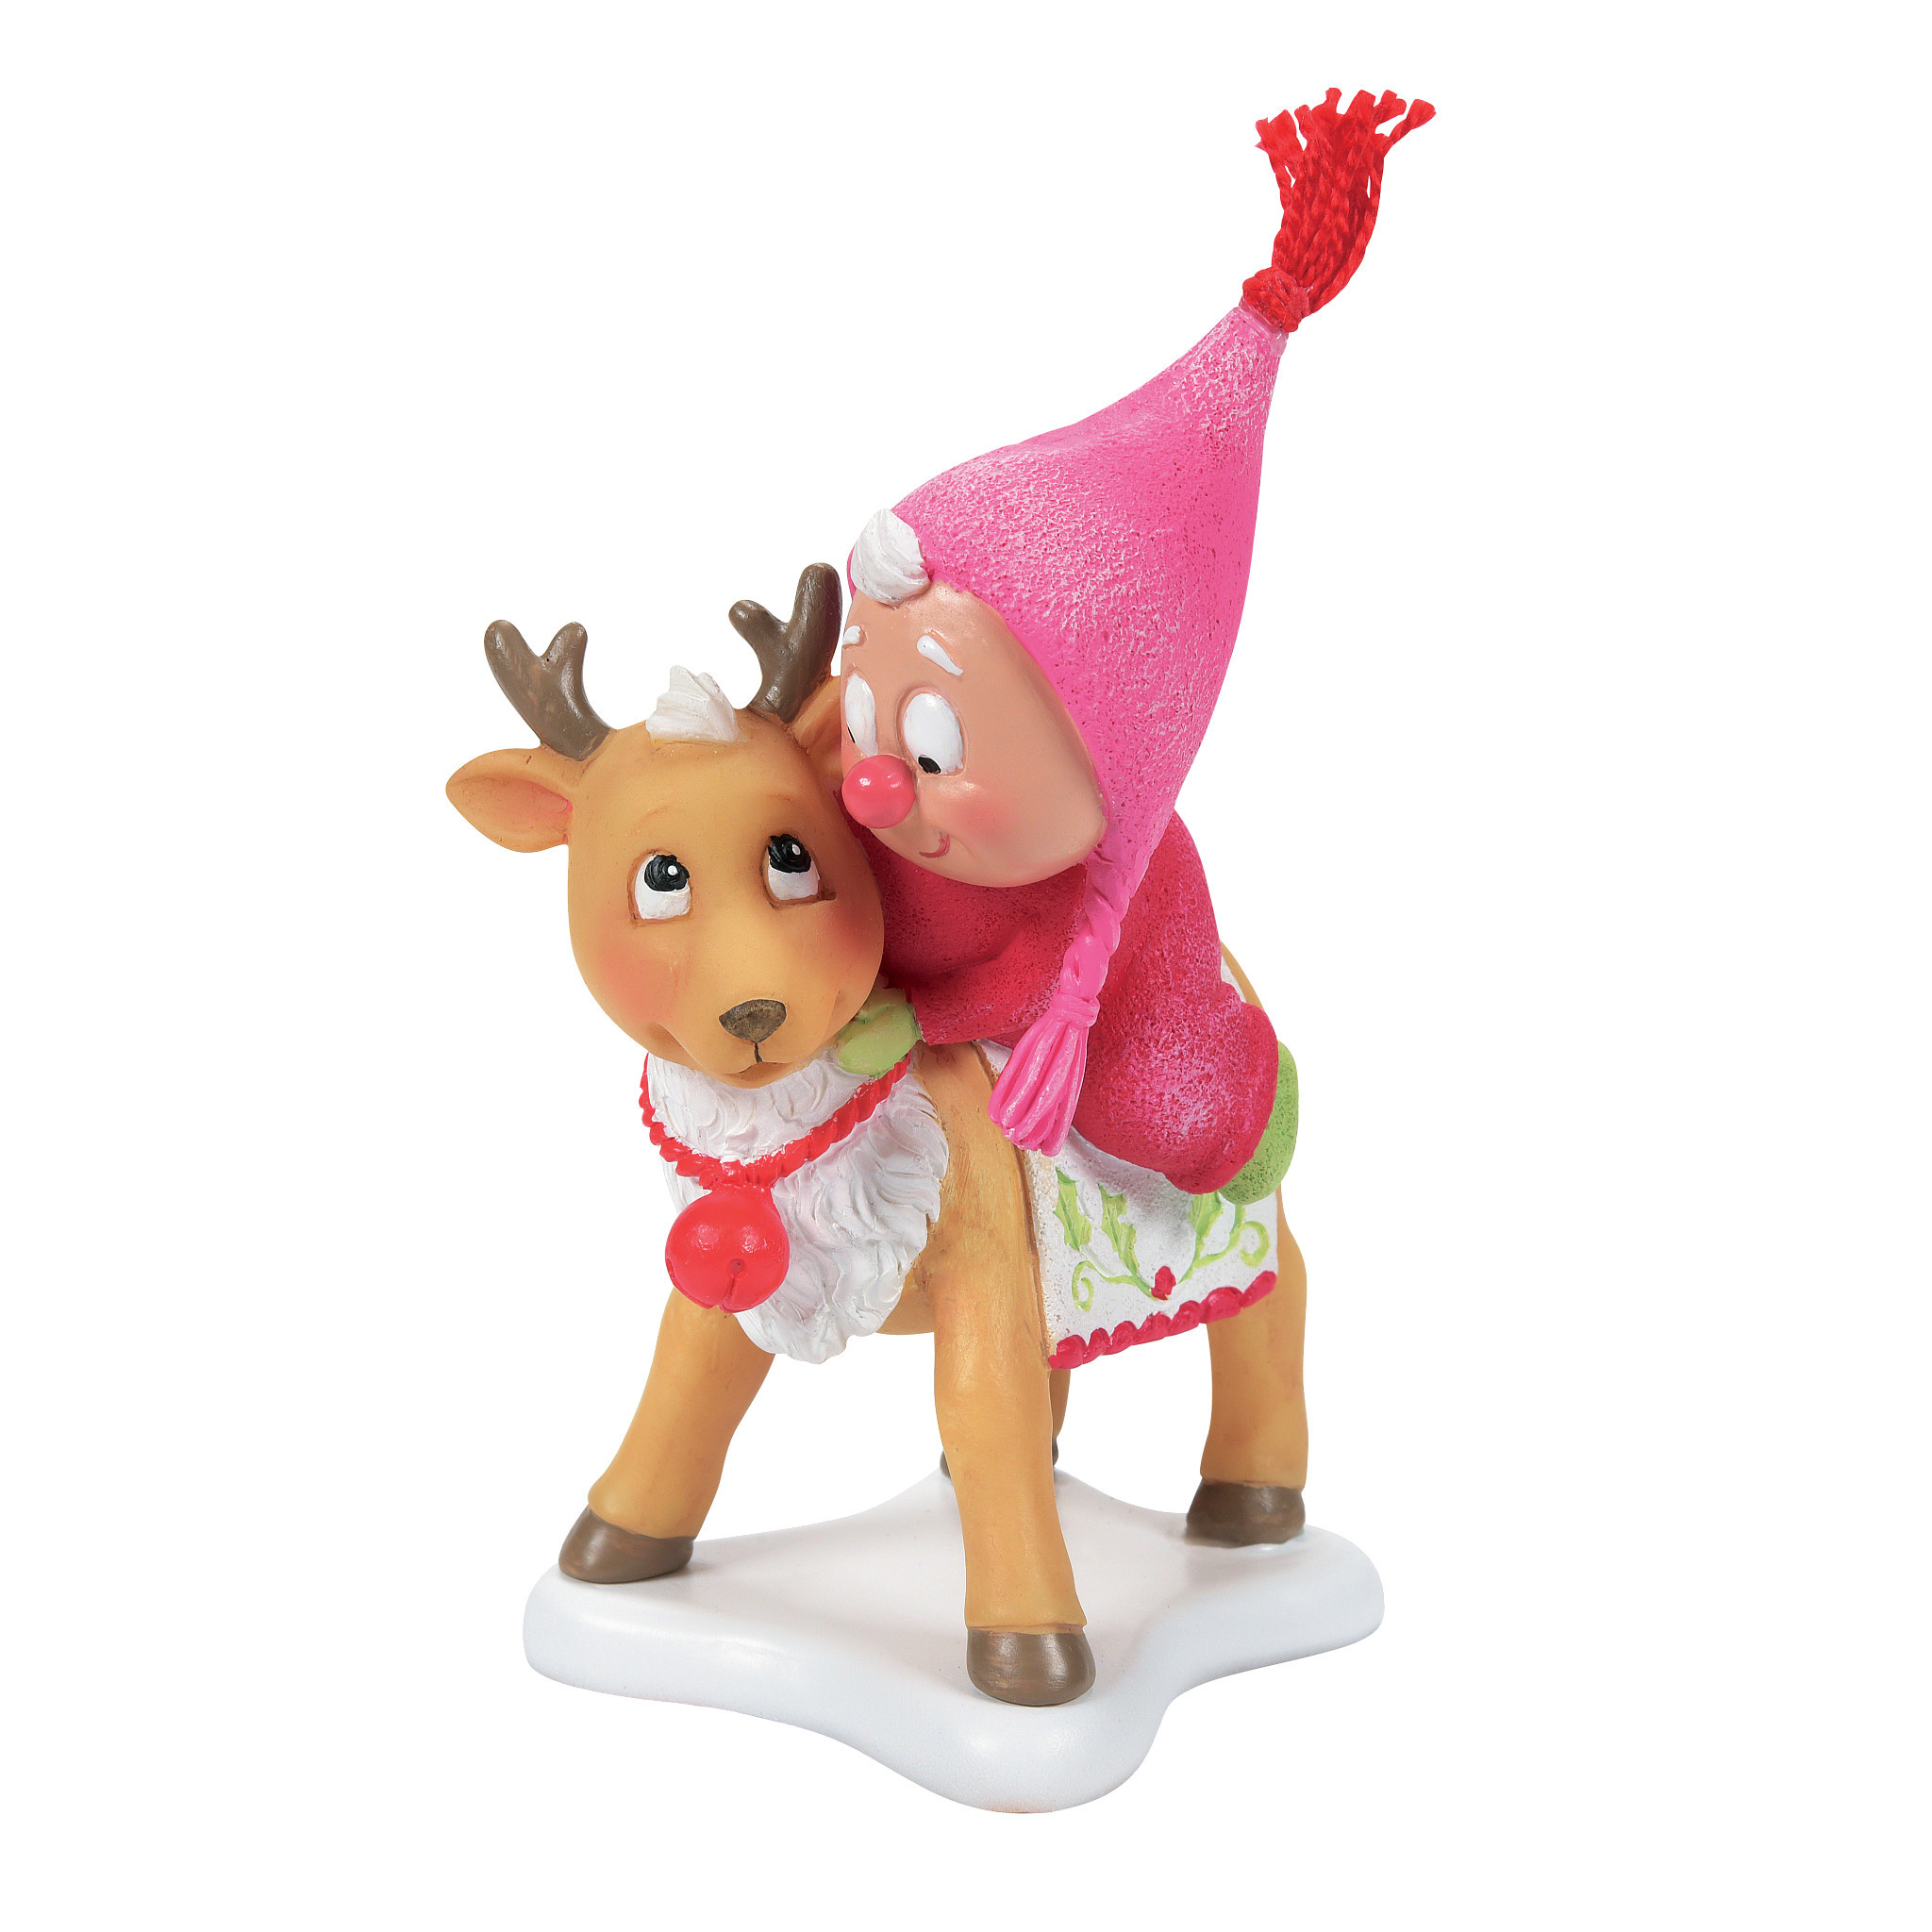 Department 56 ® - Figurines 'Snow Gnome on Deer N' 2021